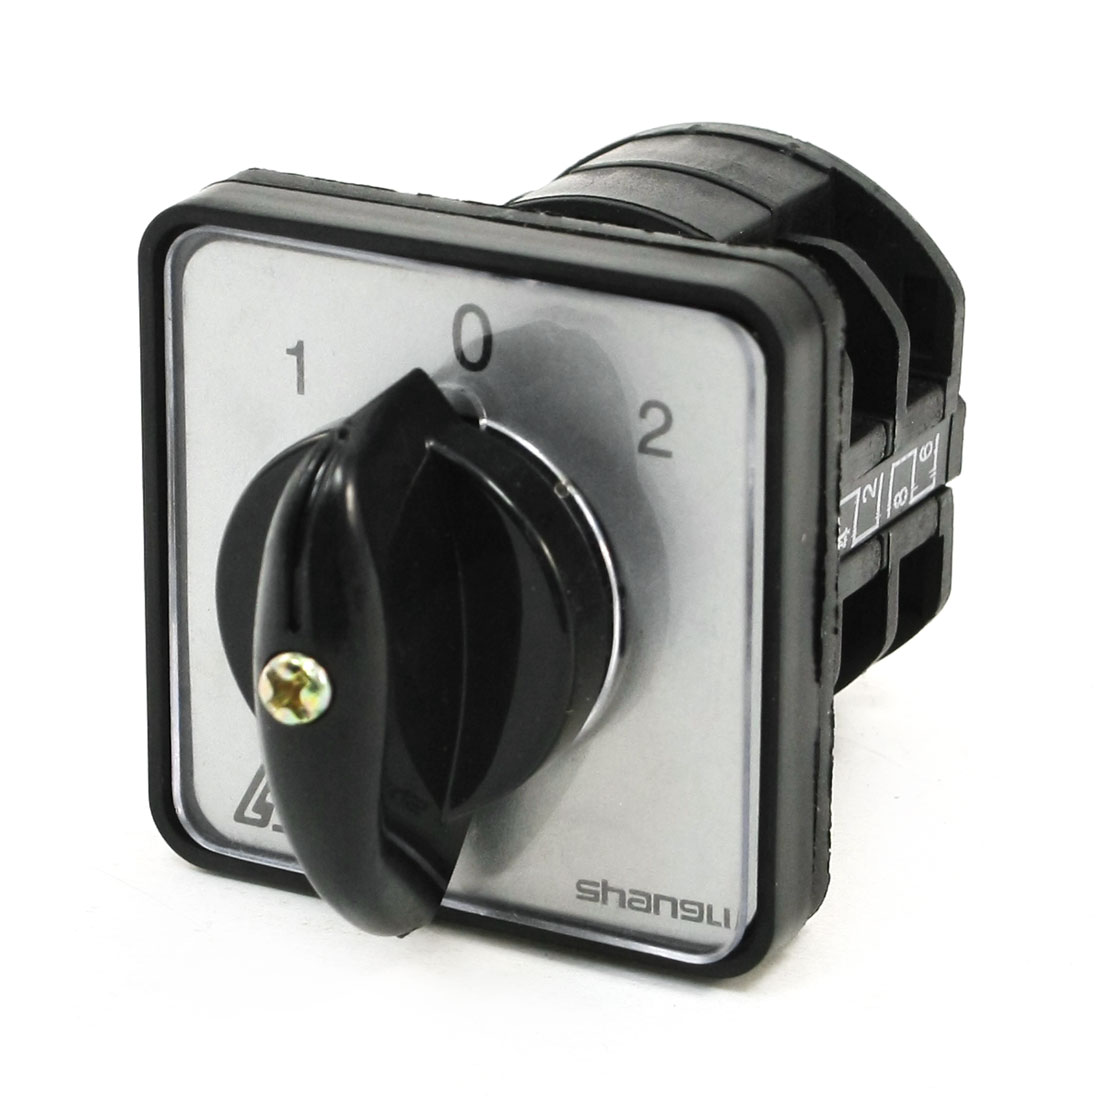 Rotary Cam 1-0-2 3 Position Changeover Combination Switch 4 Terminals